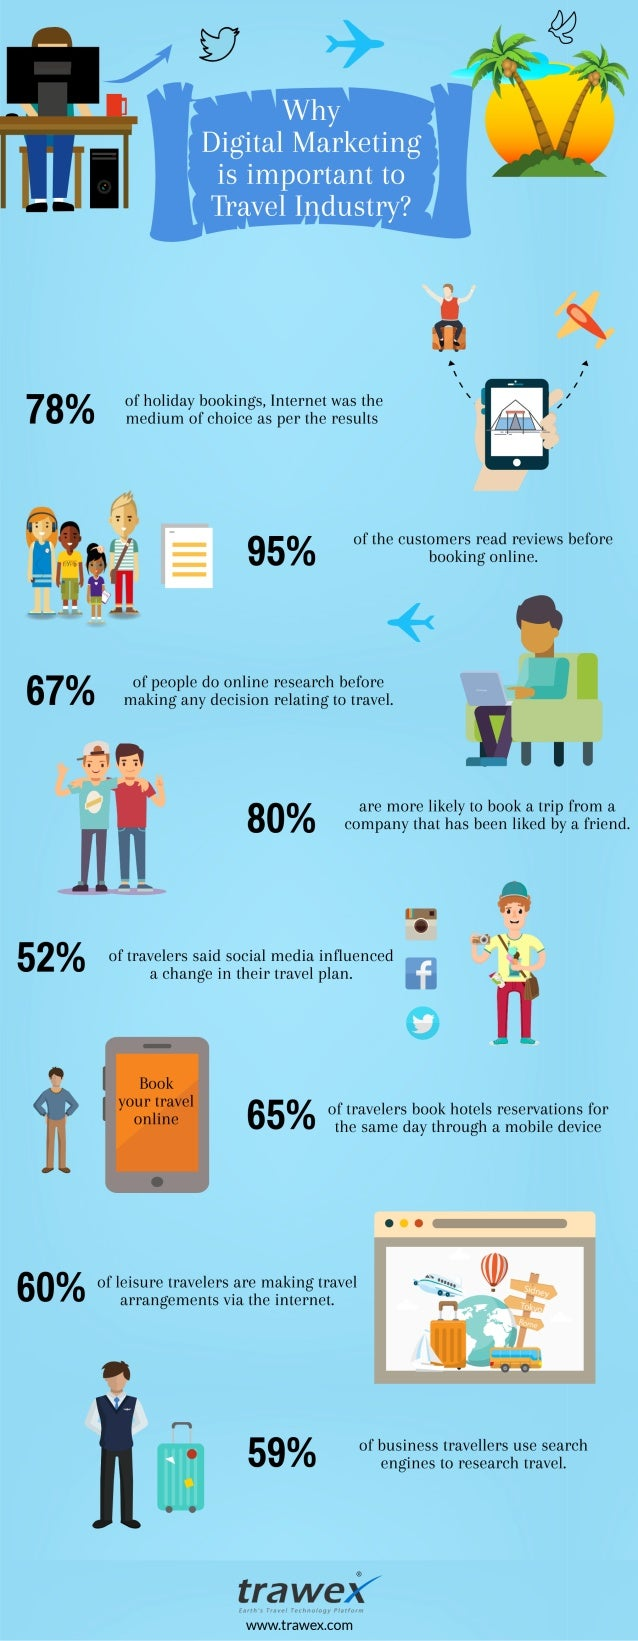 Importance of Digital marketing for travel idustry Infographics - Trawex